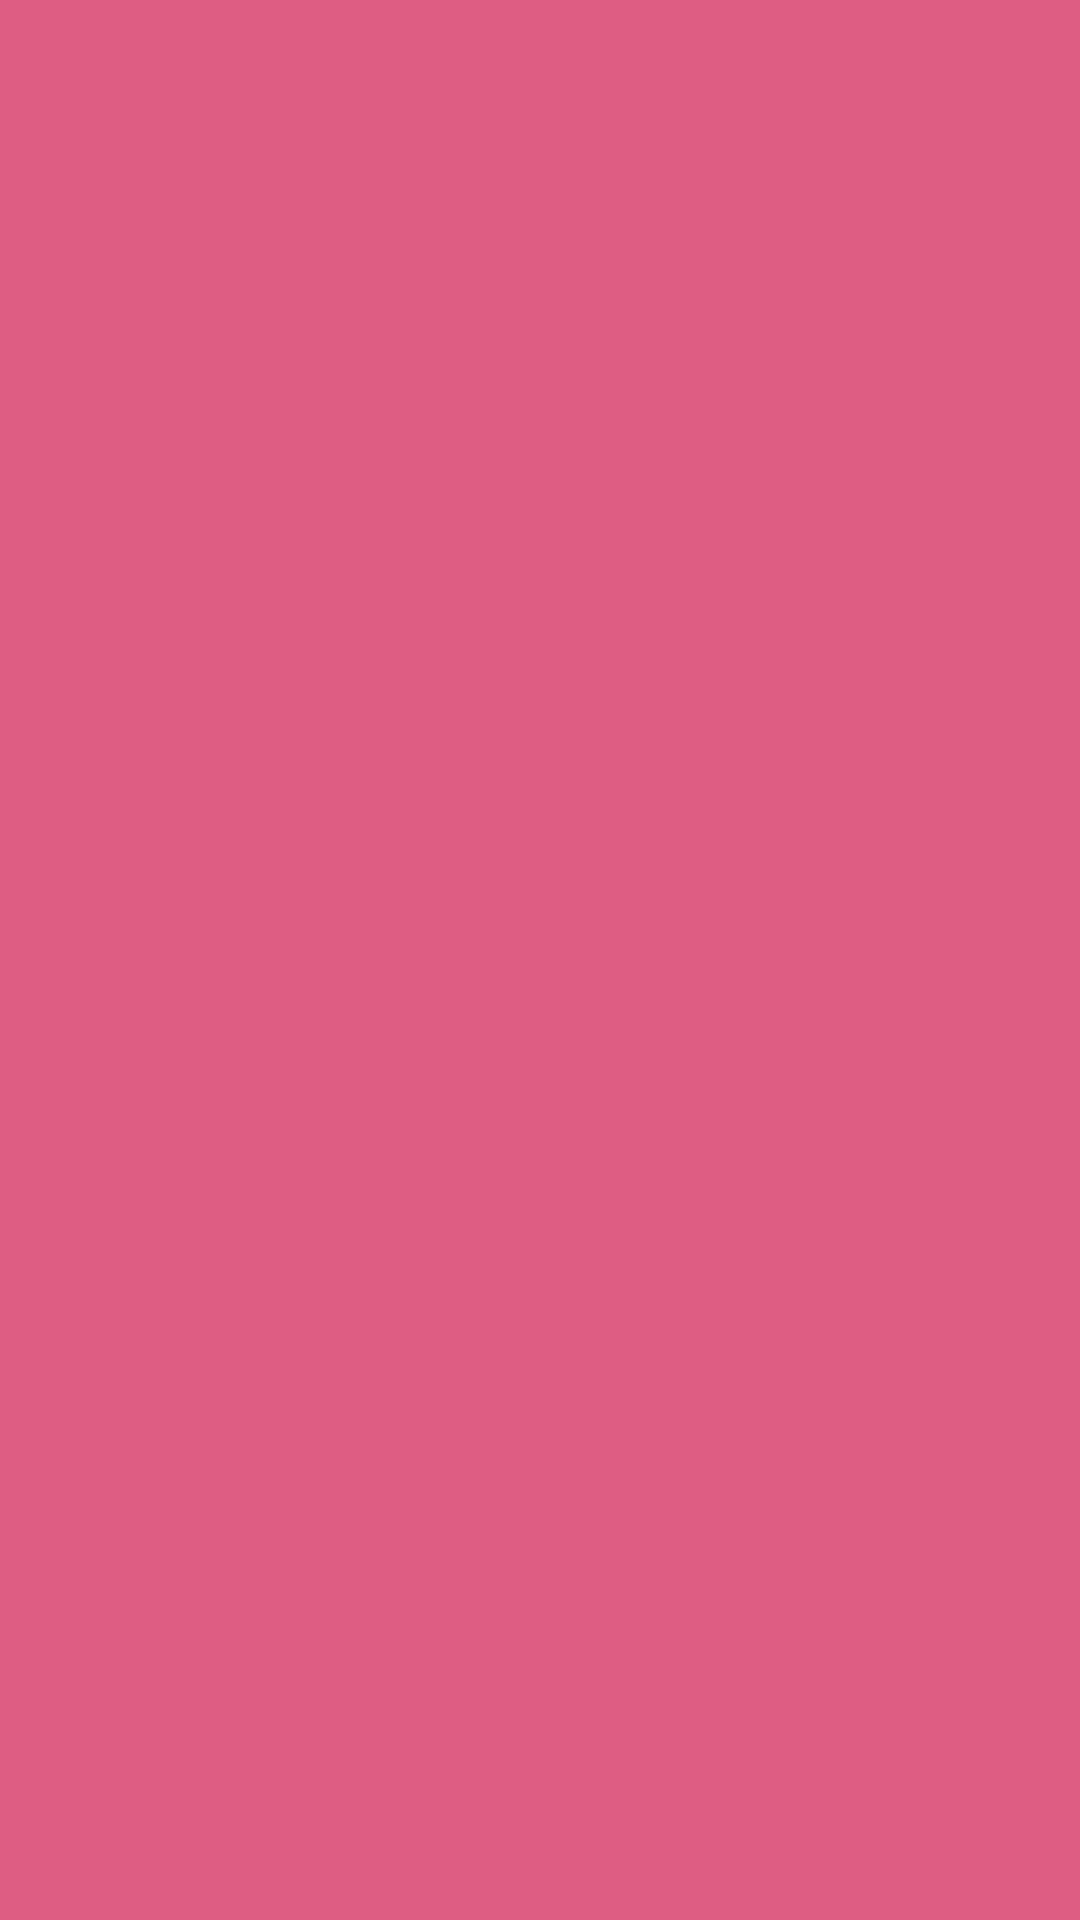 1080x1920 Blush Solid Color Background